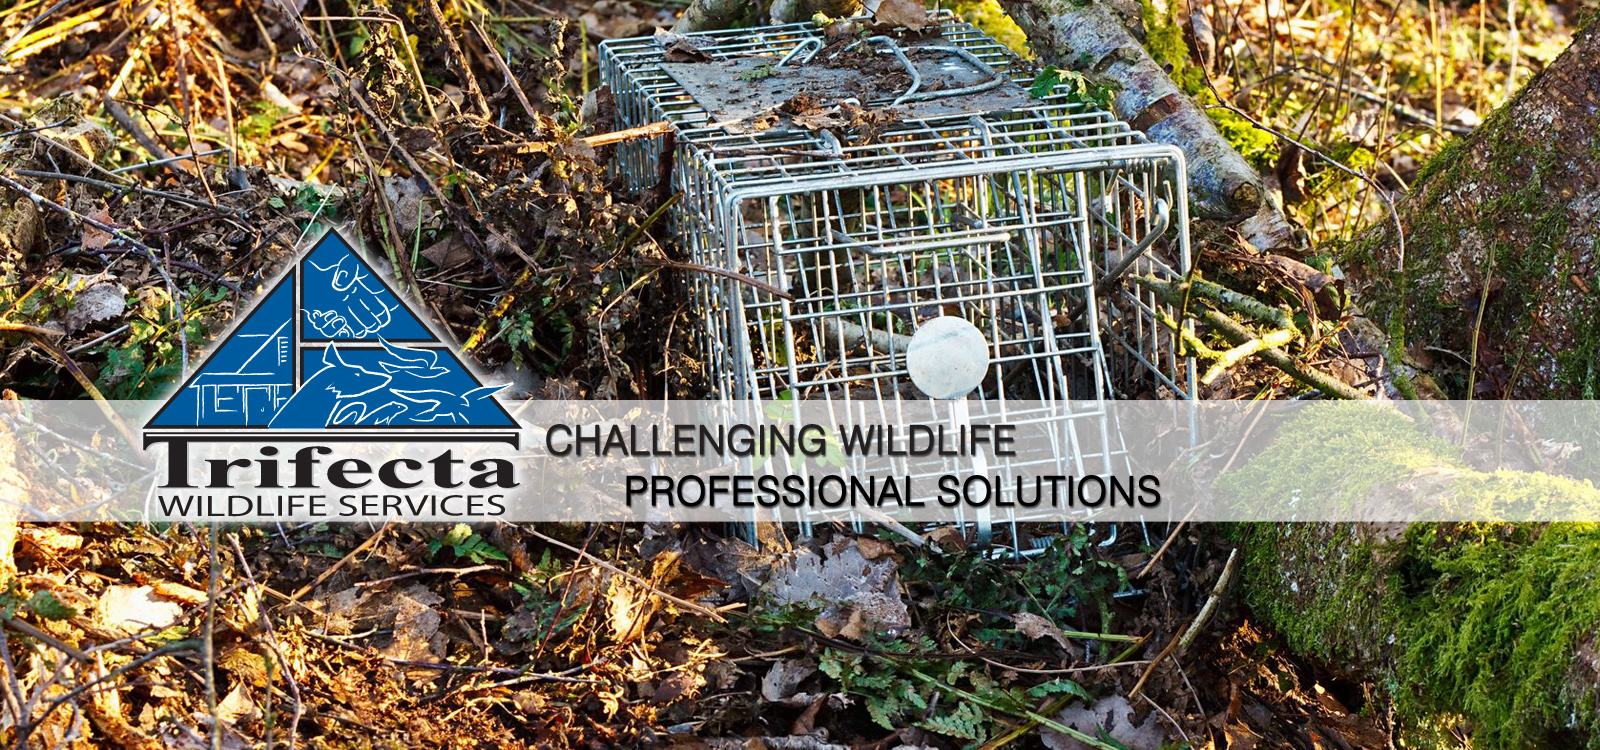 <div class='slider_caption'>		 <h1>Challenging Wildlife, Professional Solutions.  Call us today! (859) 415-4226</h1> 			<a class='slider-readmore' href=''>Read More</a>